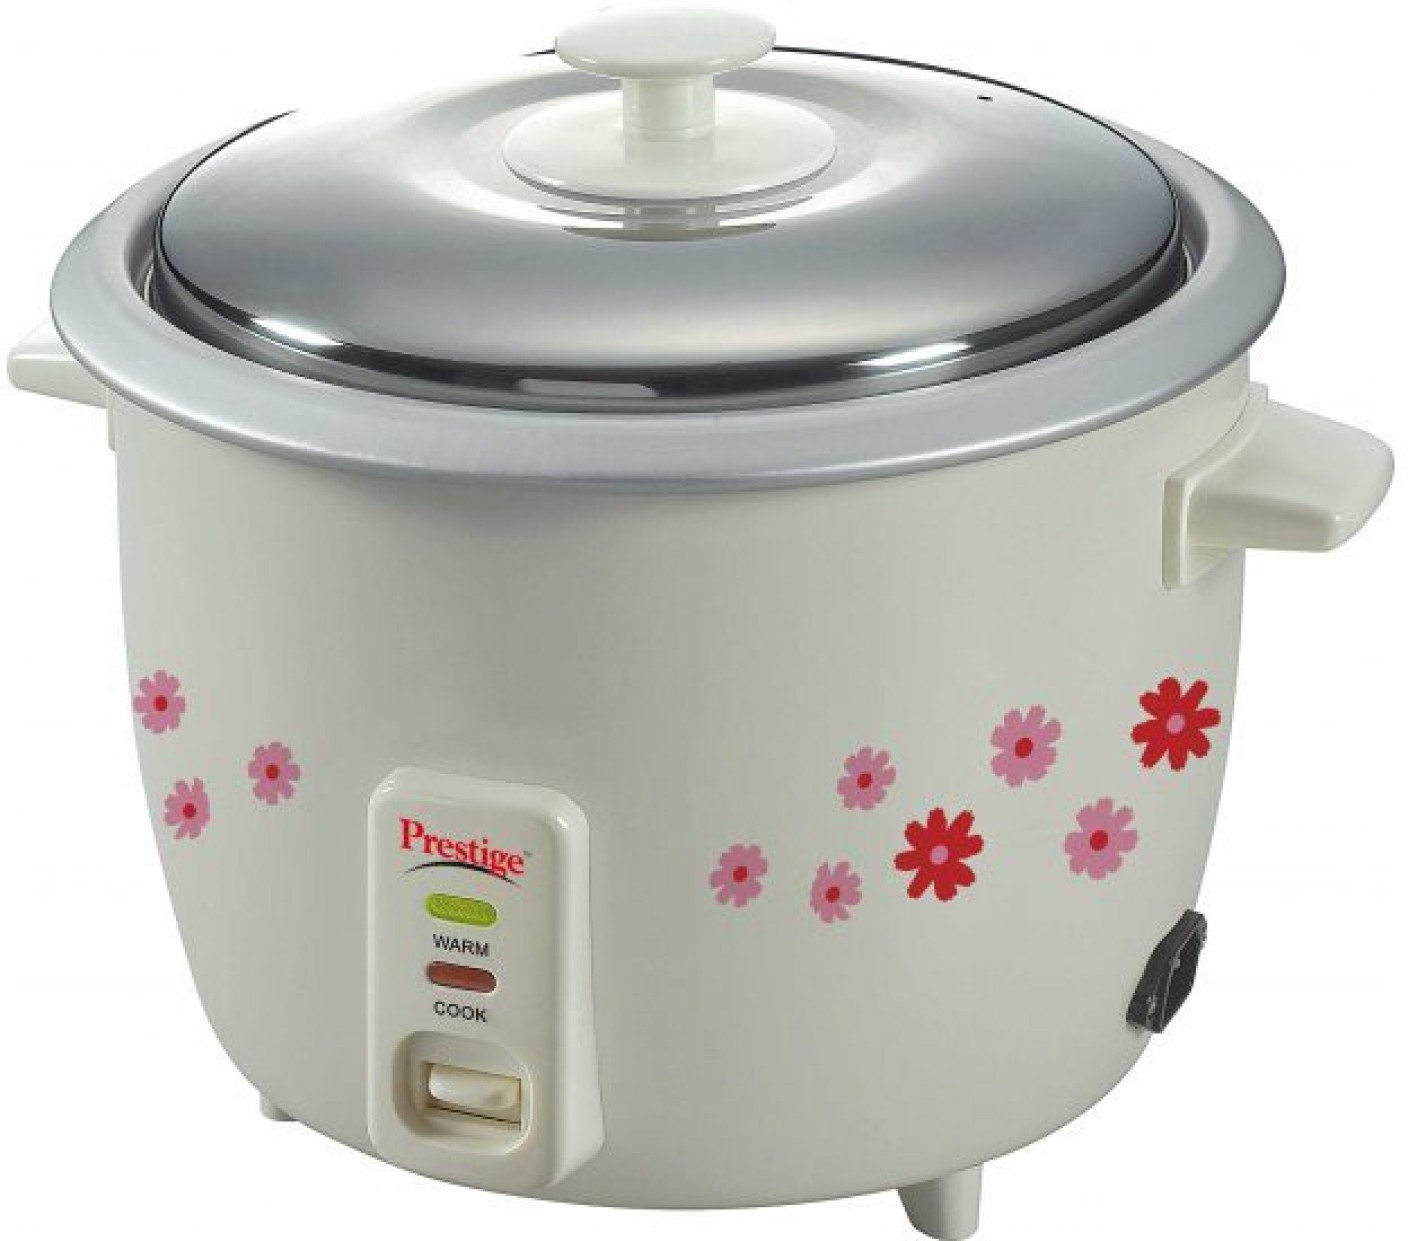 Prestige PRWO 1.8-2 Electric Rice Cooker with Steaming Feature ...